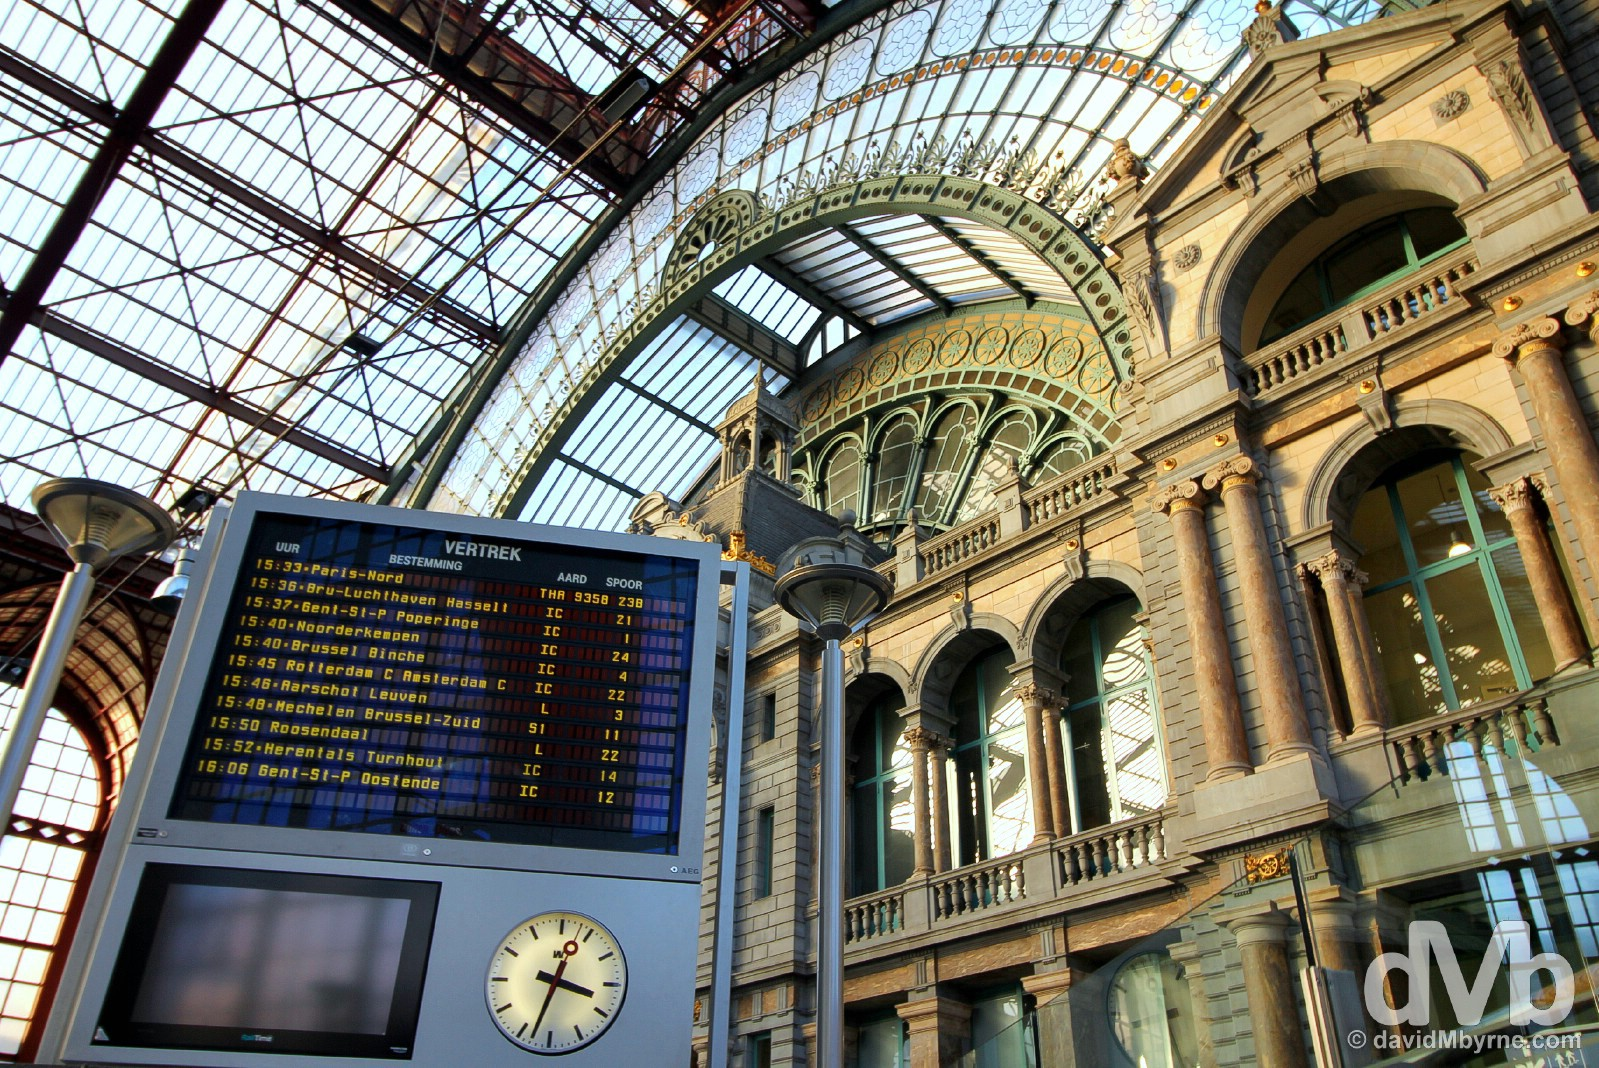 Central Station in Antwerp, Belgium. January 17, 2016.